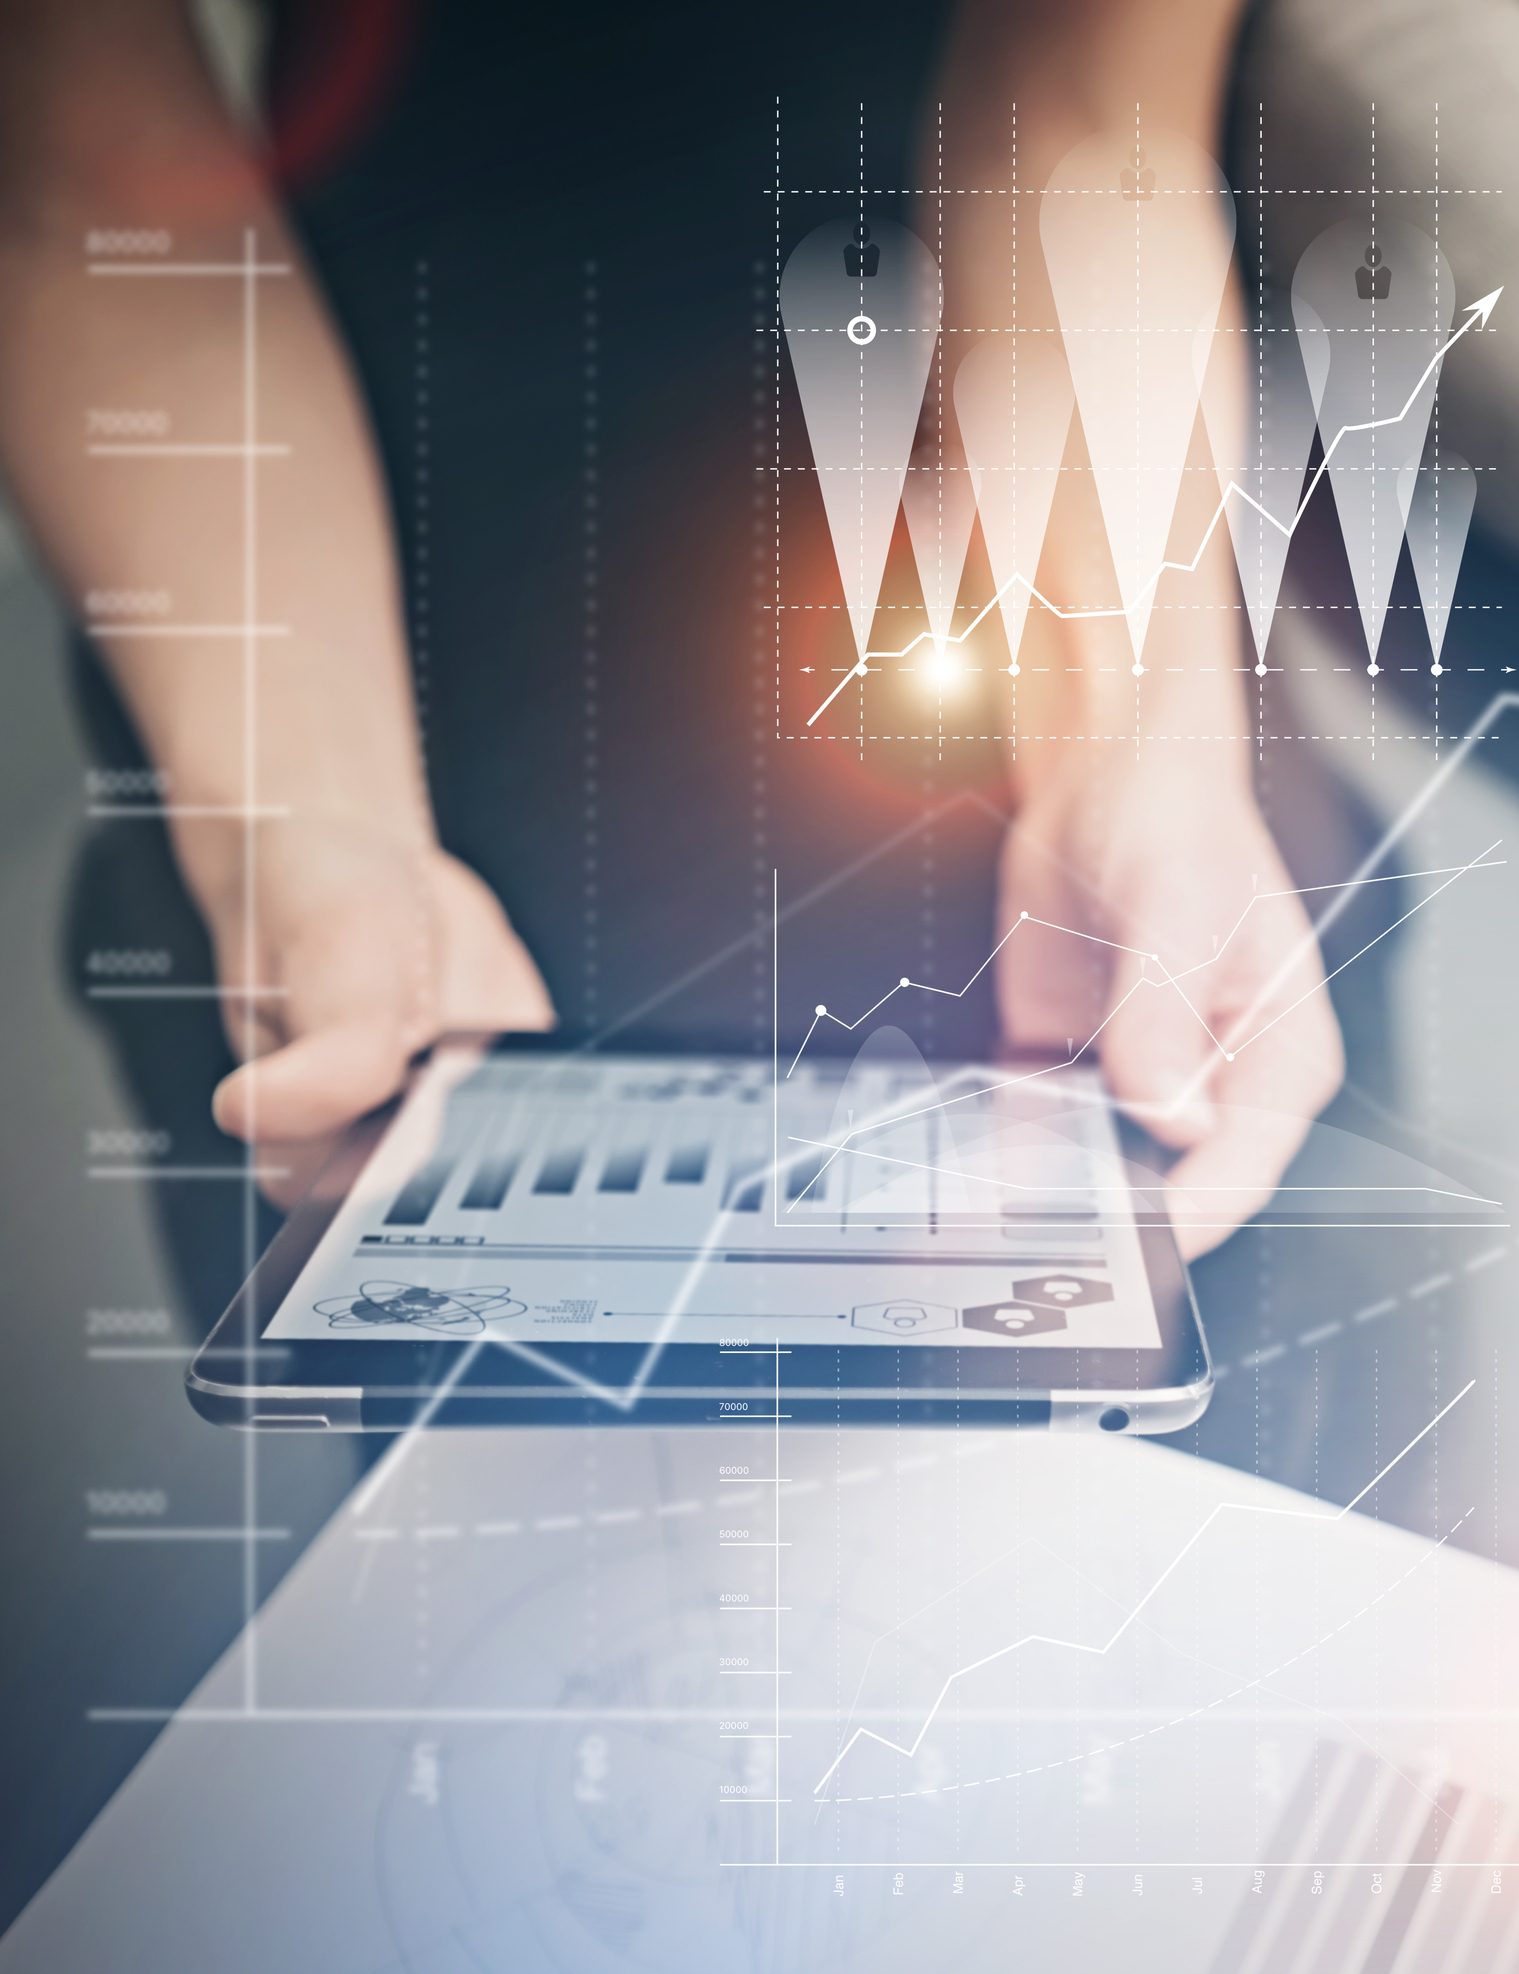 Photo female hands holding modern tablet. Manager working new private banking project office. Using electronic devices. Graphics icons, worldwide stock exchanges interface on screen.